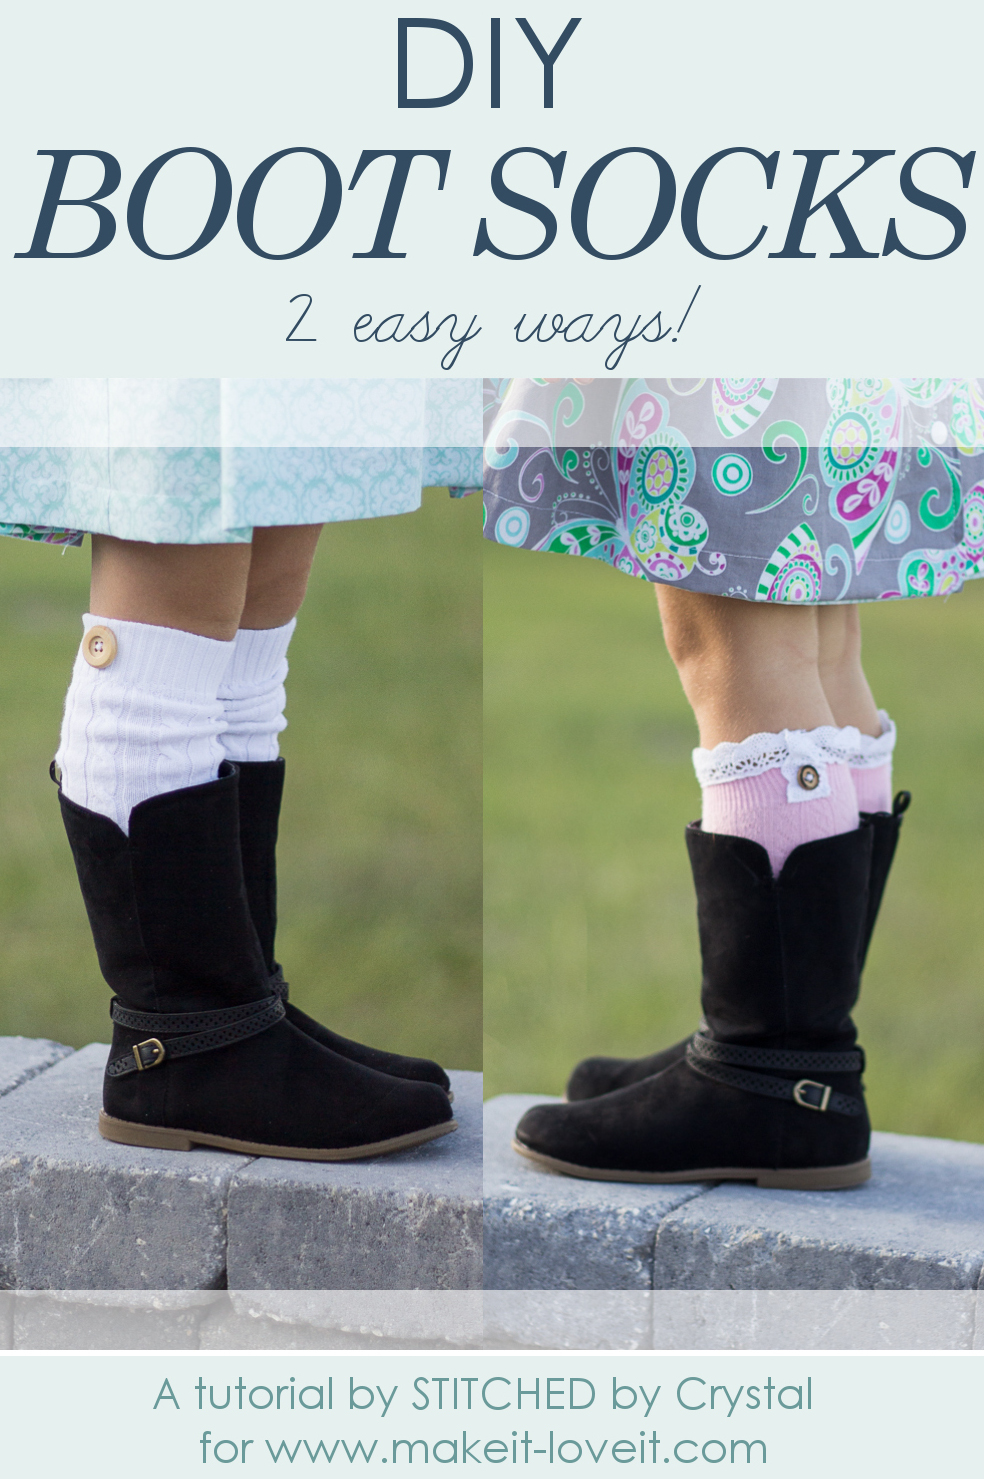 DIY Boot Socks…2 easy methods!